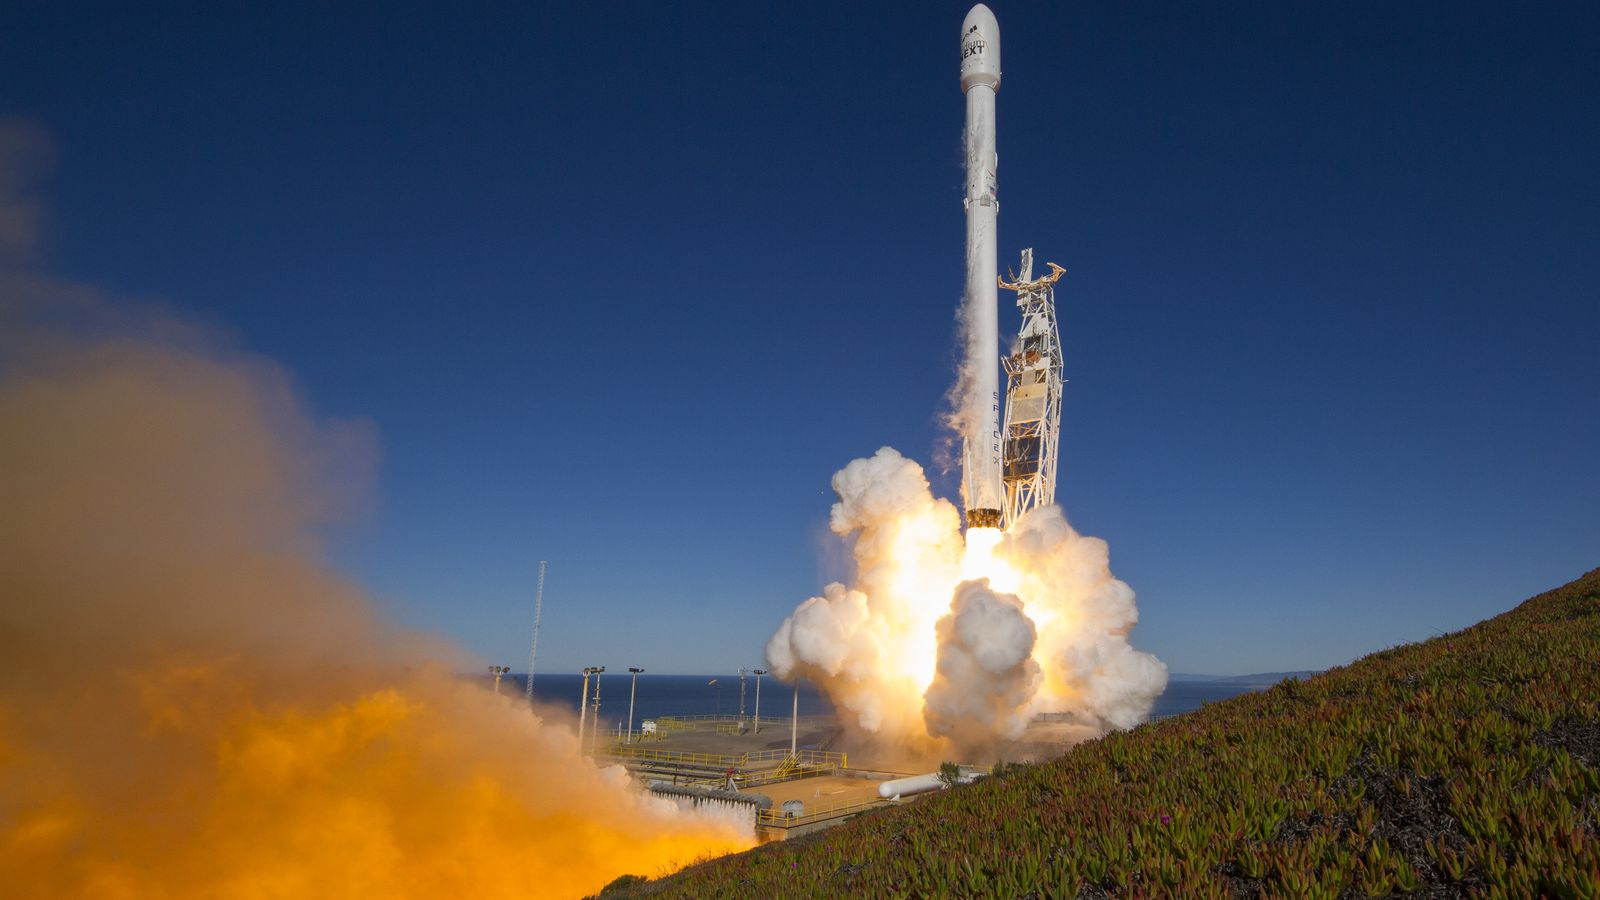 theverge.com - Loren Grush - SpaceX is back to launching rockets again, but pressure is still high after last year's failure